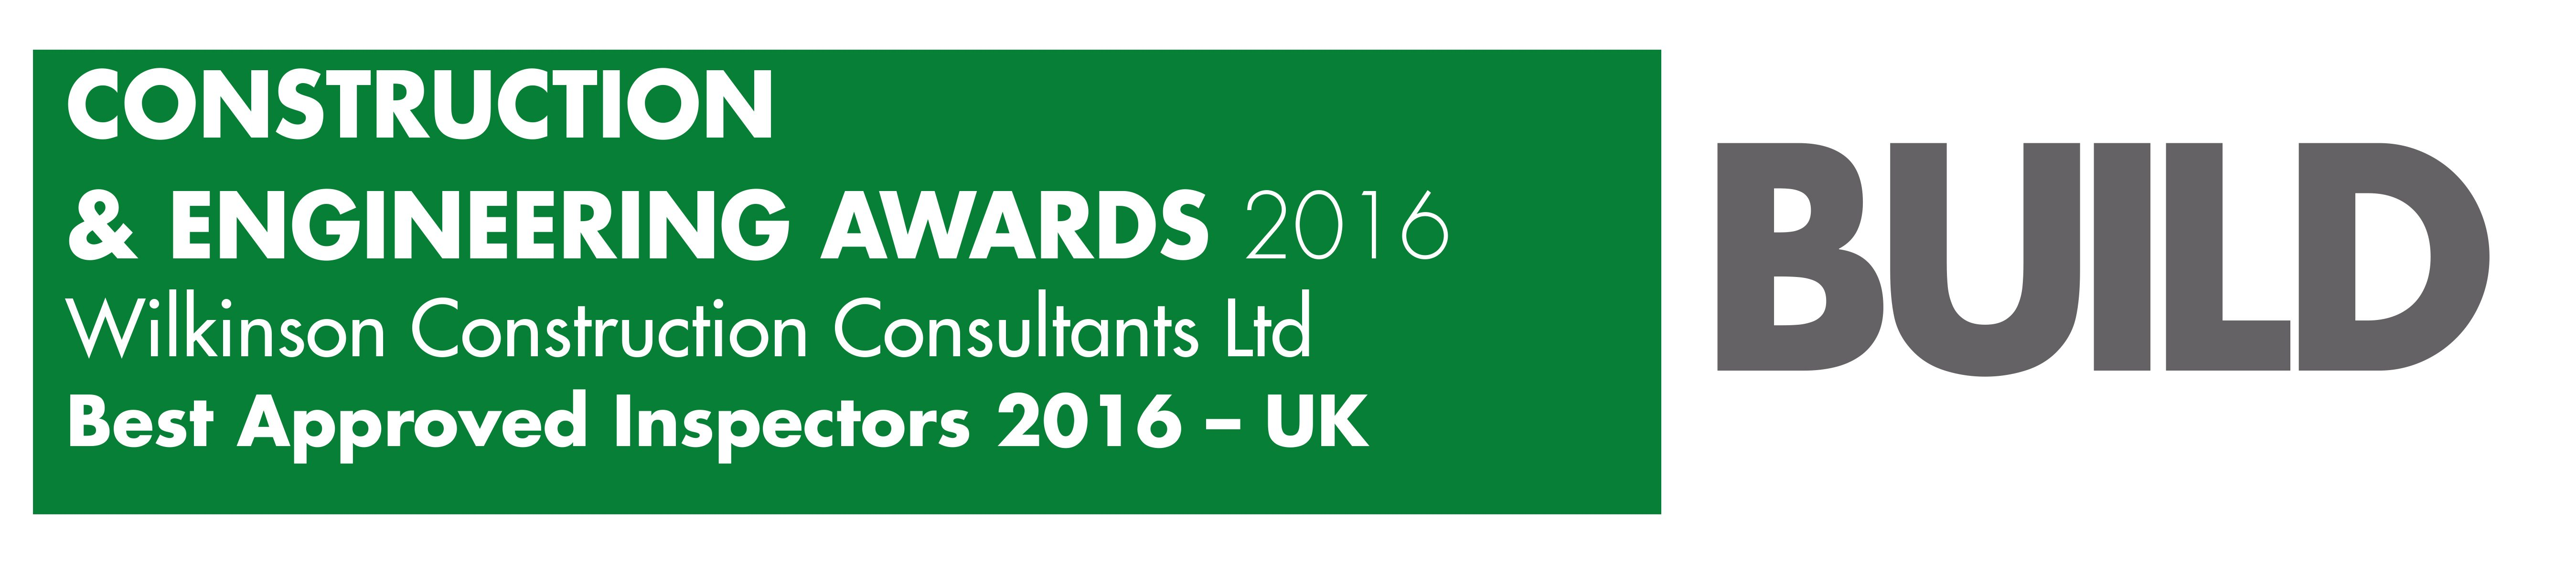 Best Approved Inspectors 2016  UK-Build - Construction  Engineering Awards 2016 Winners logo.jpg